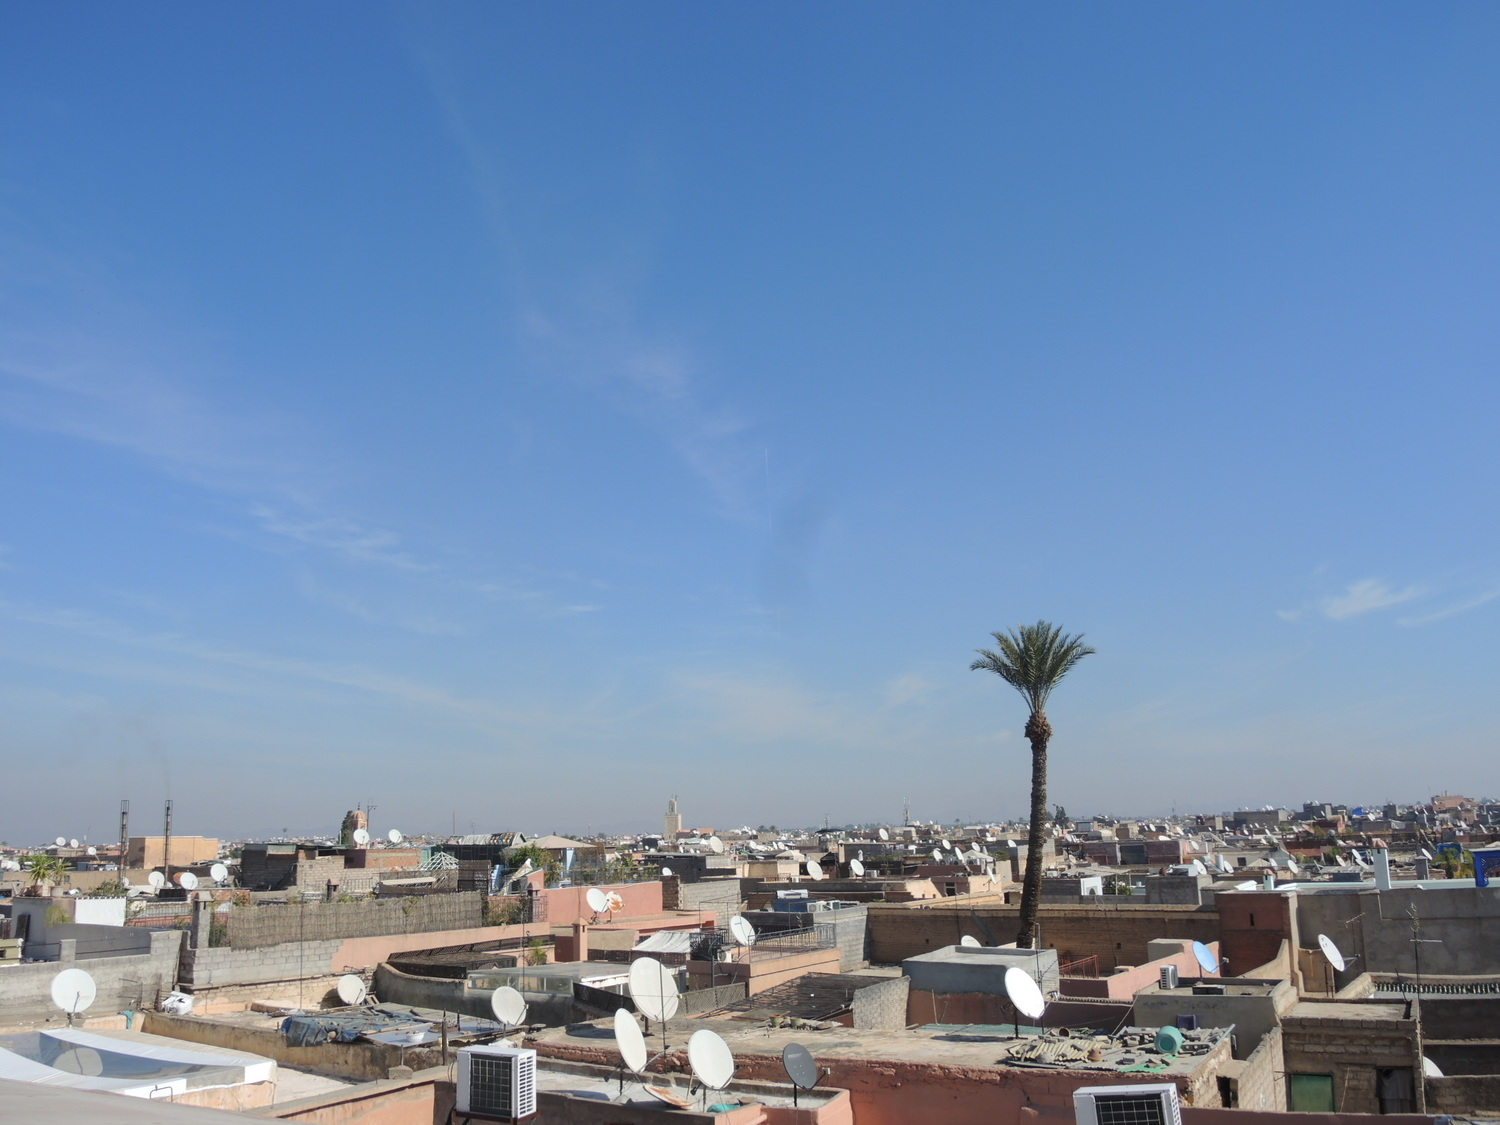 Roofs of Marrakech